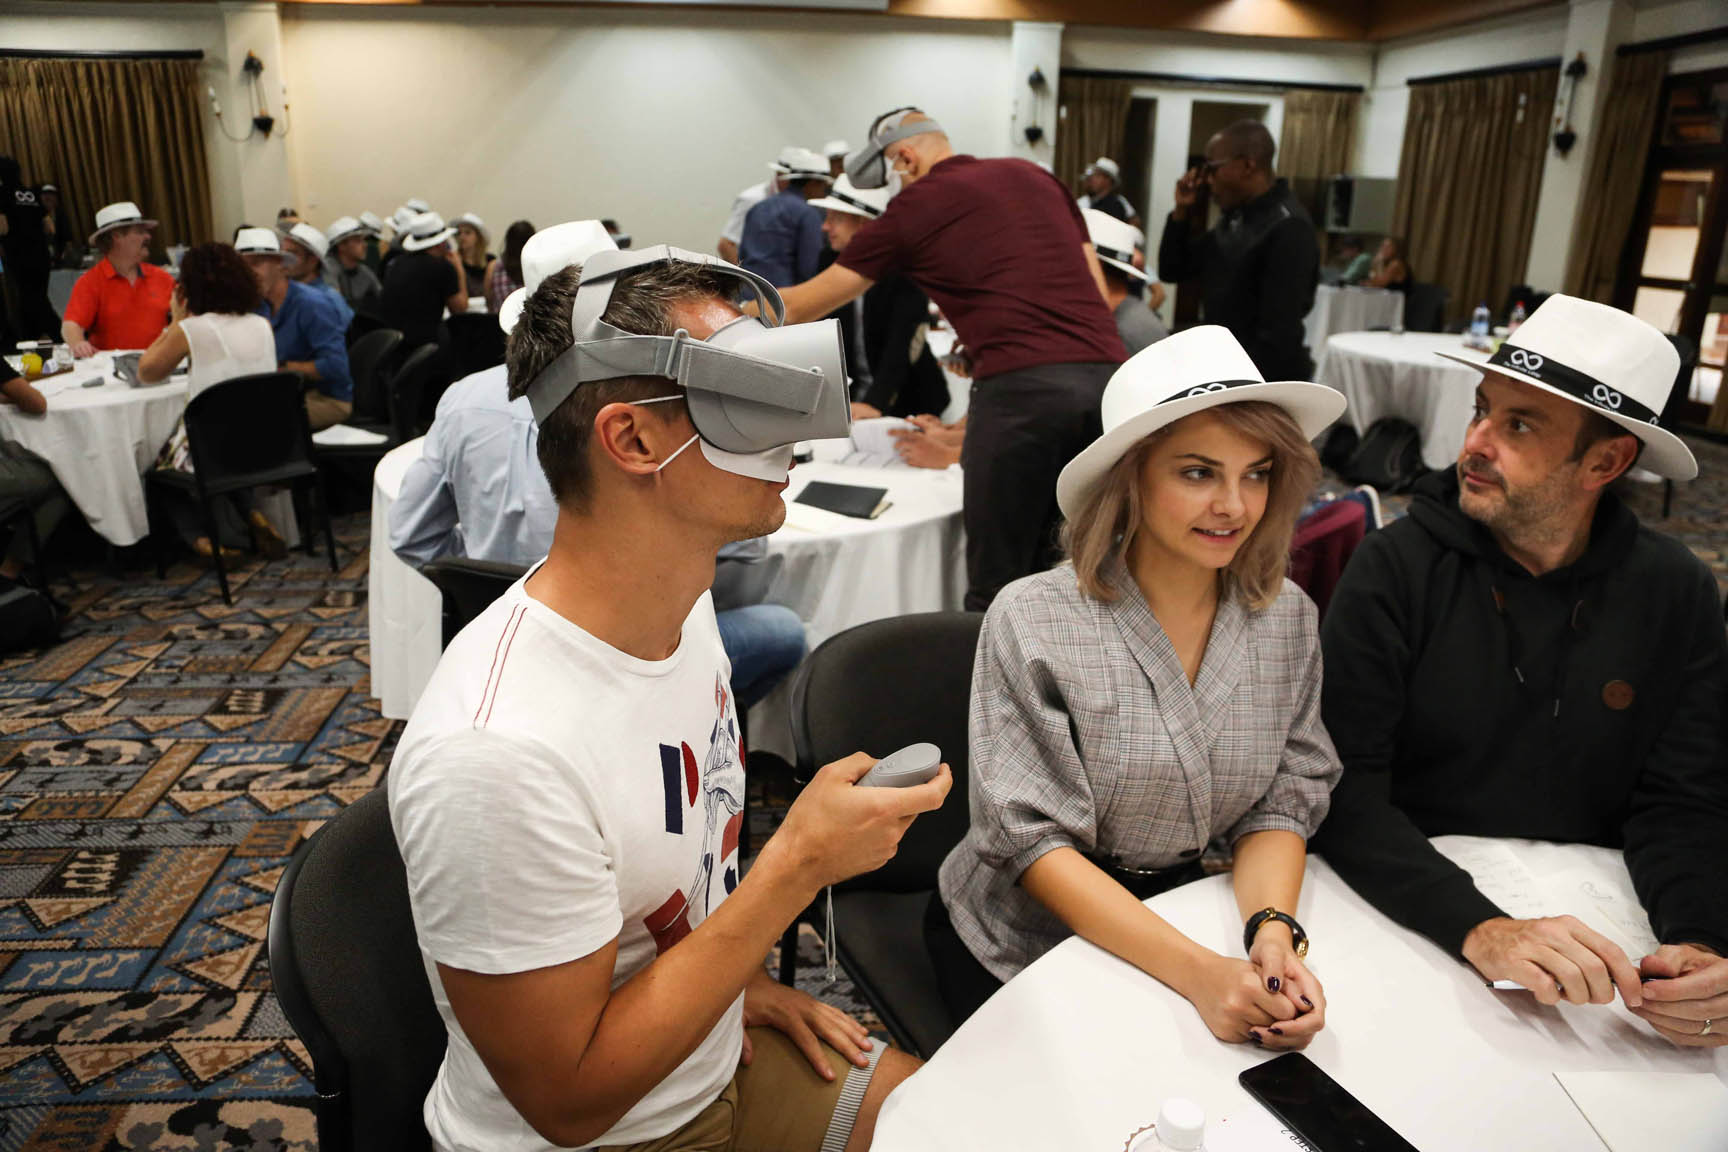 A delegate with a virtual reality headset on, while sitting with his teammates during team building game infinite loop.